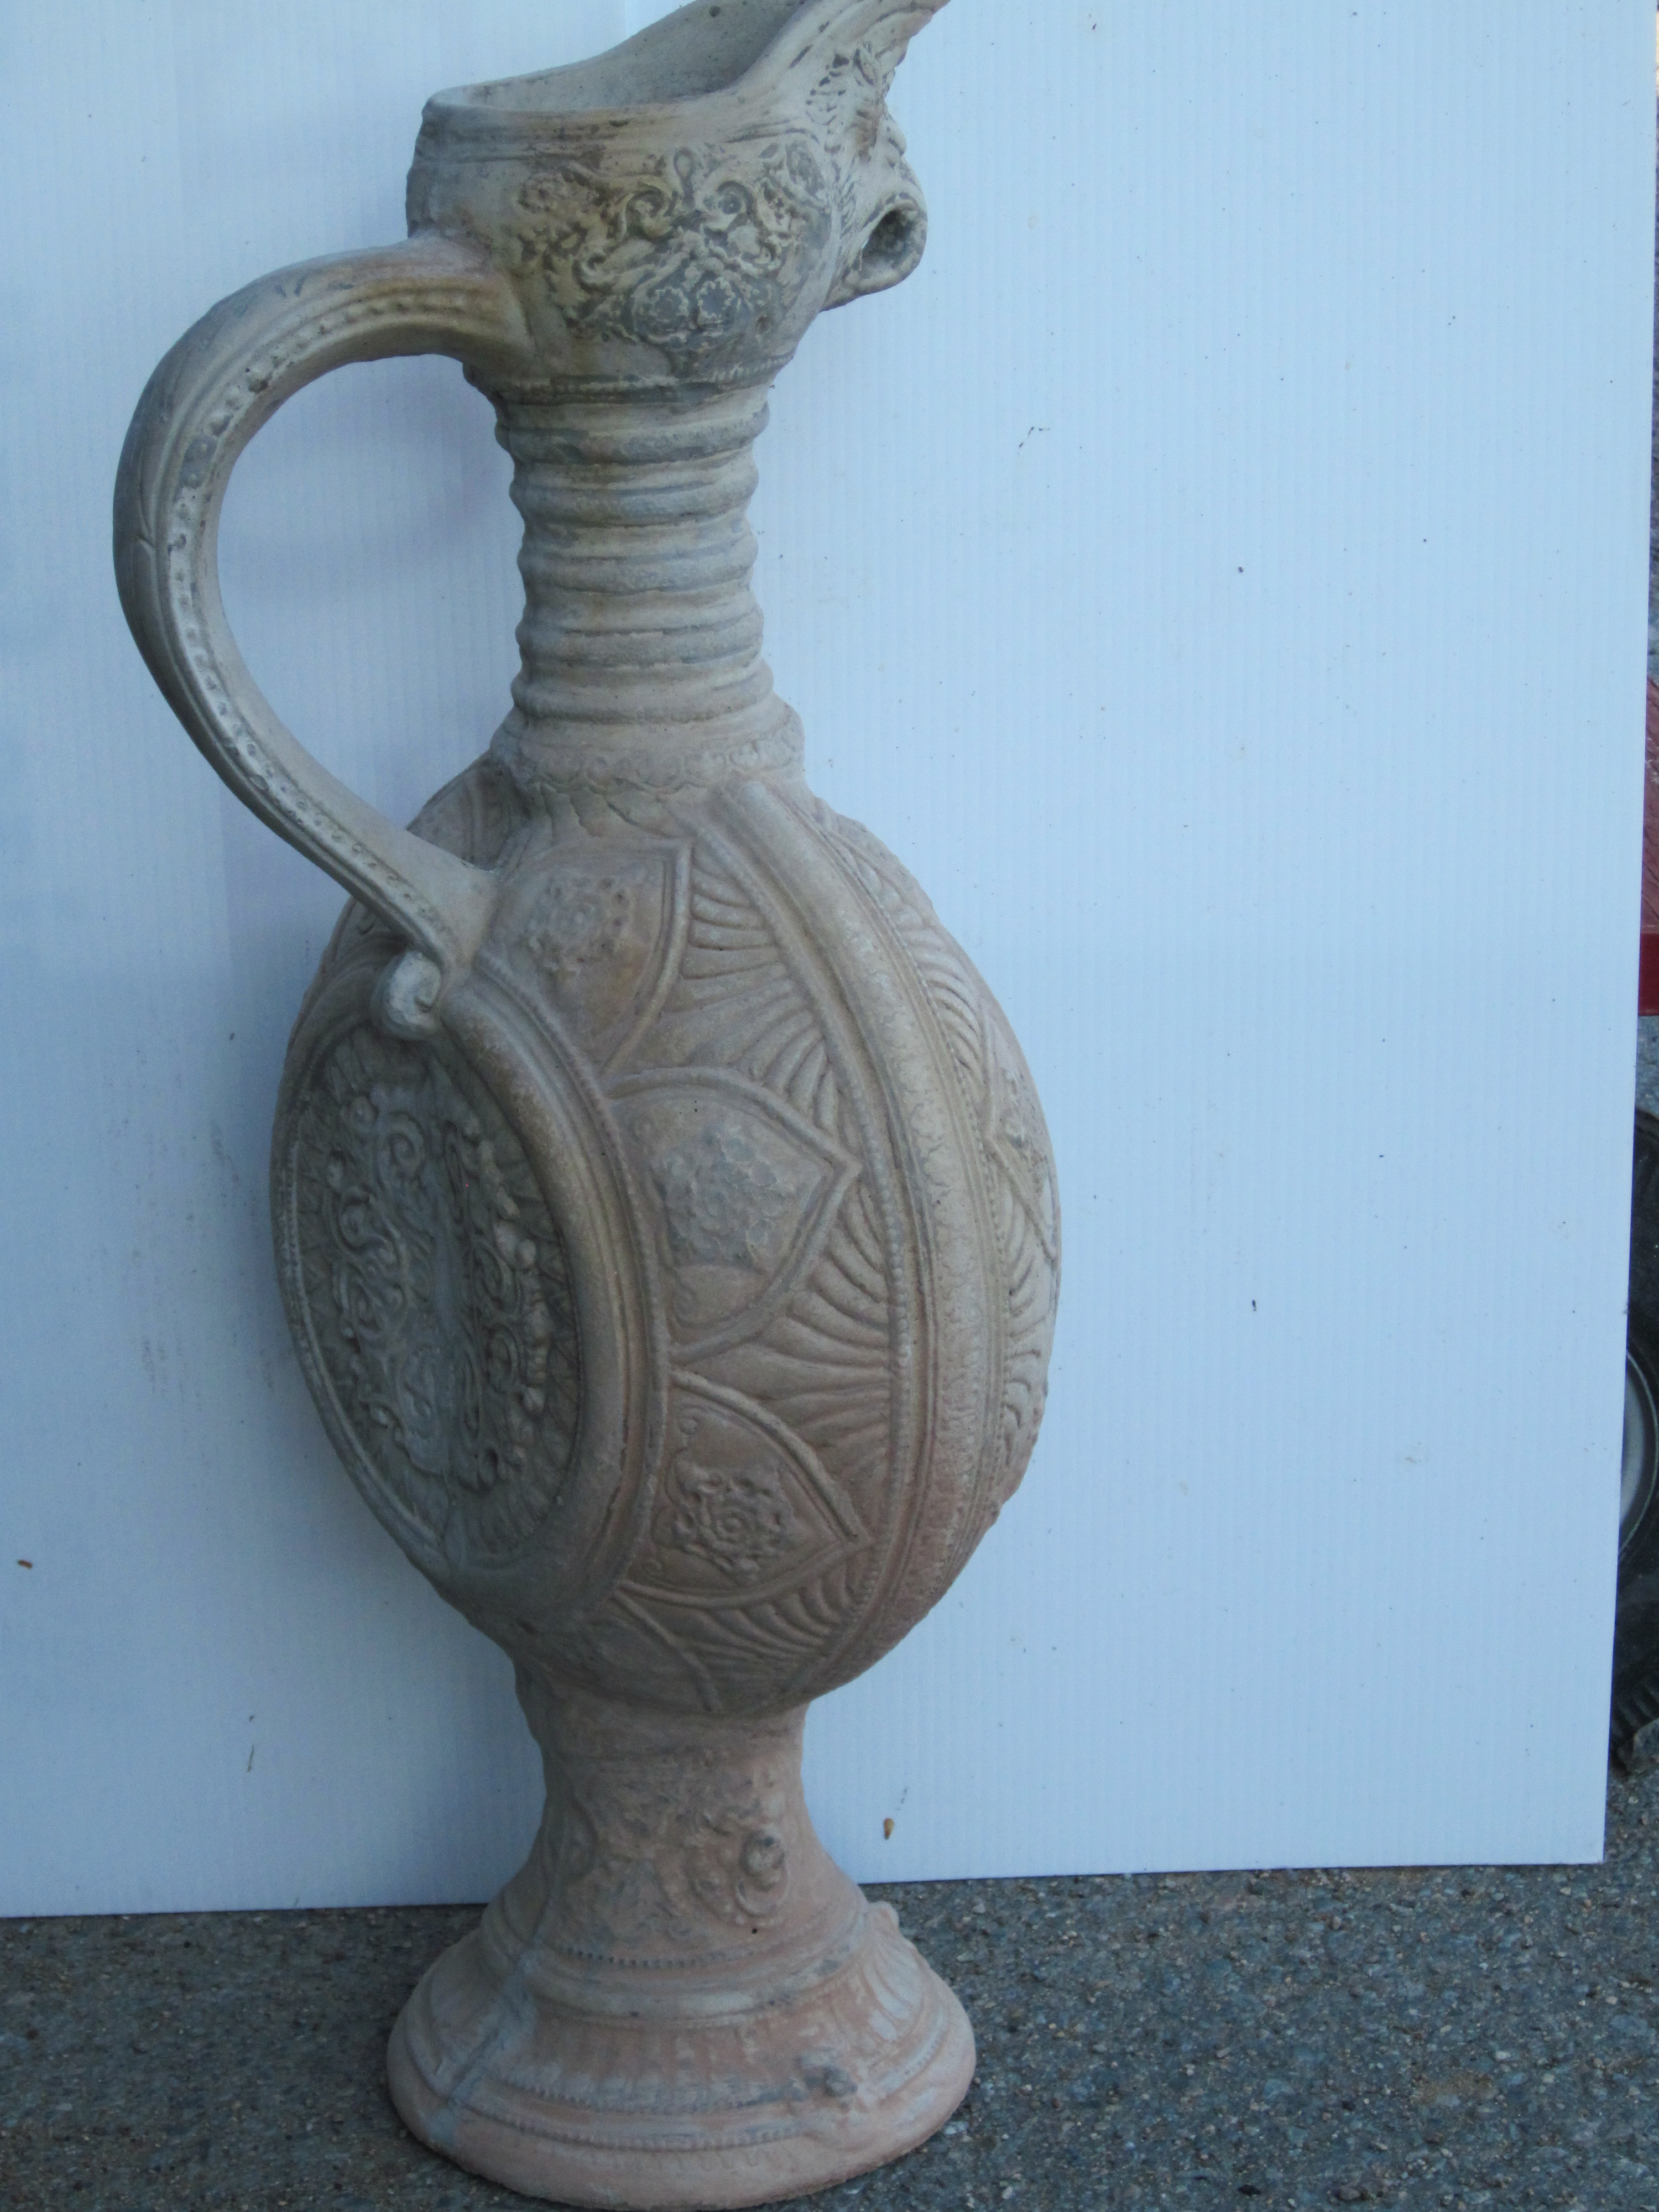 Urn with handle 26